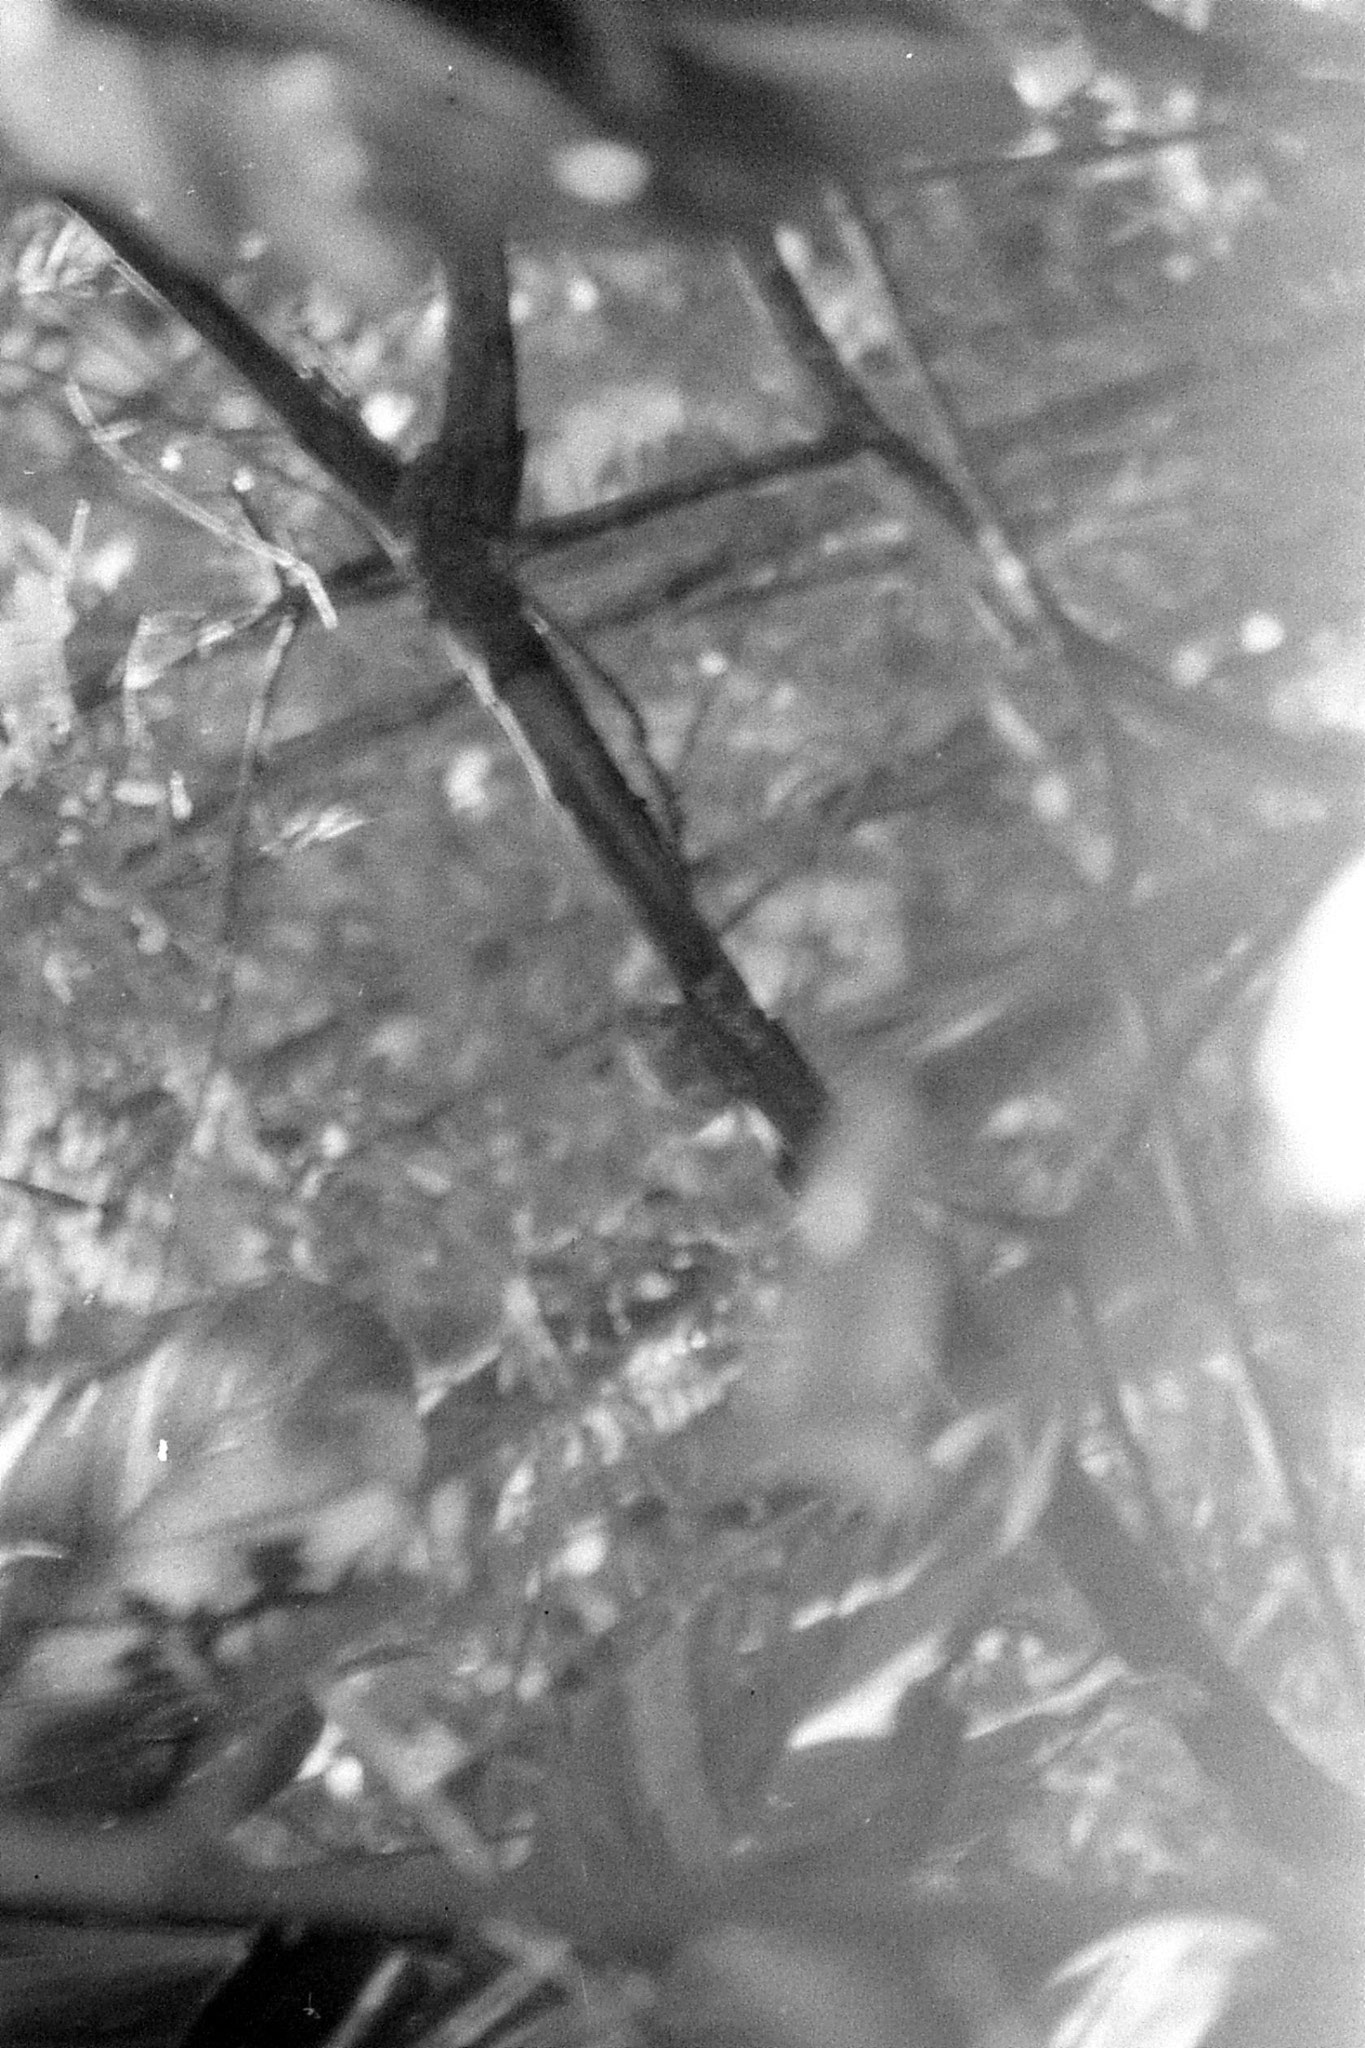 10/1/90: 12: Bangalore palm squirrel in tree